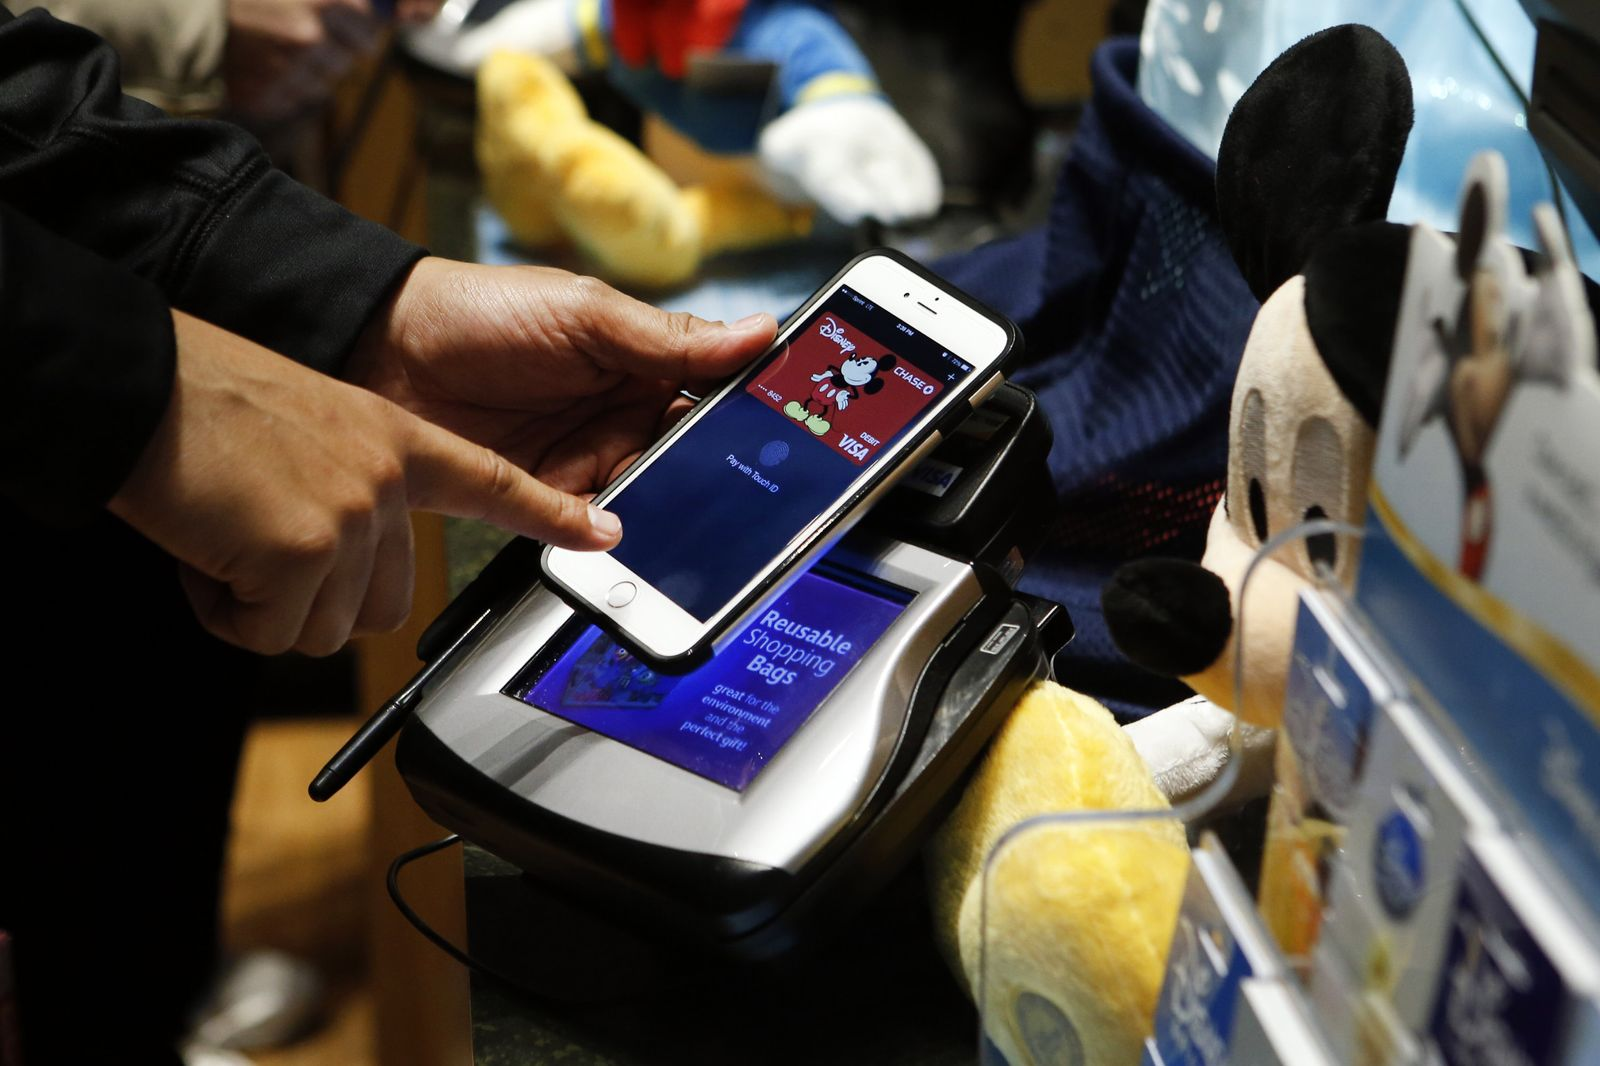 Apple Pay Purchase at Disney Store